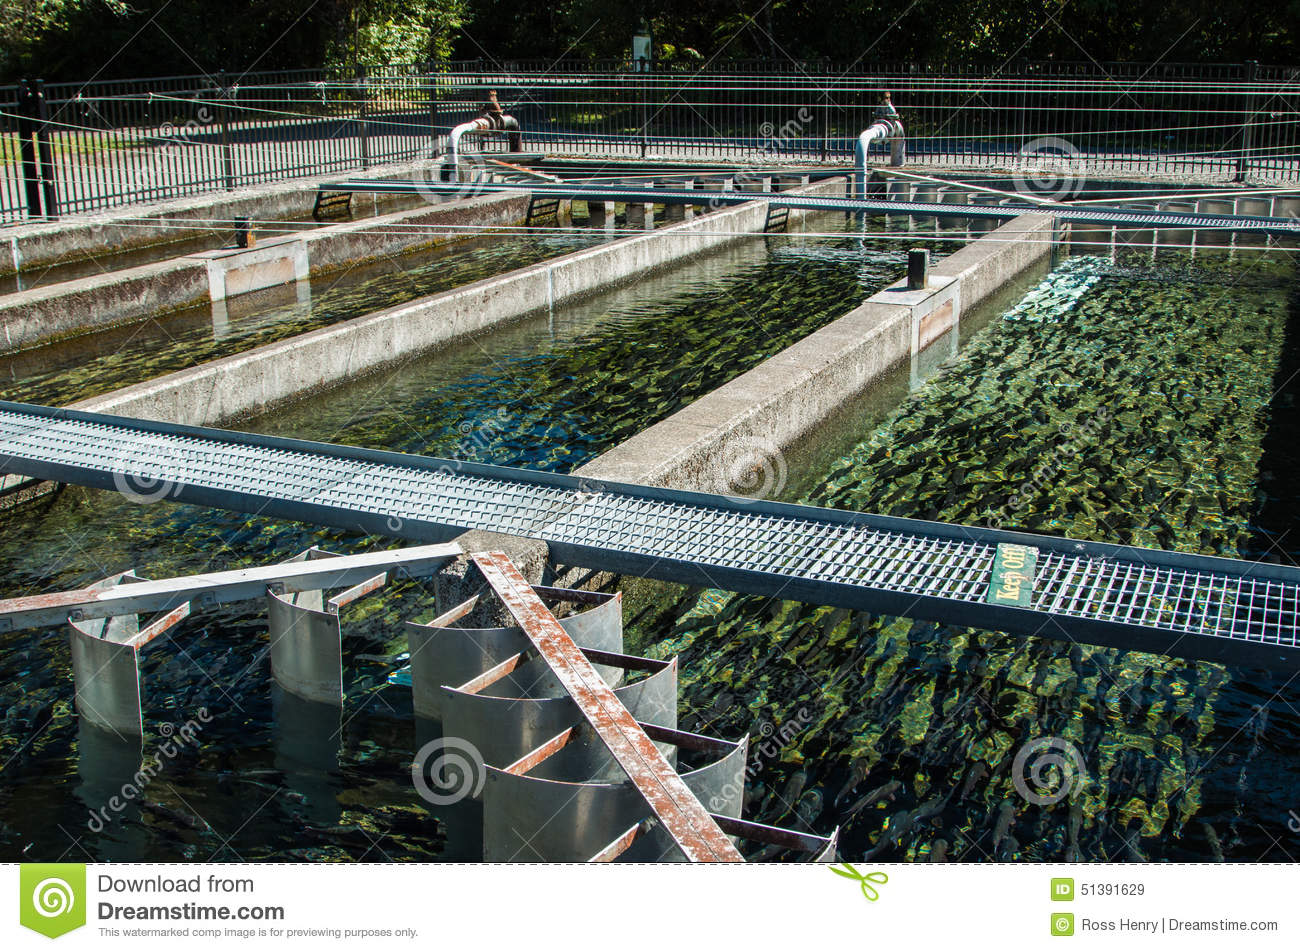 Trout farm ponds stock image image of many fishpond for Trout farm fishing